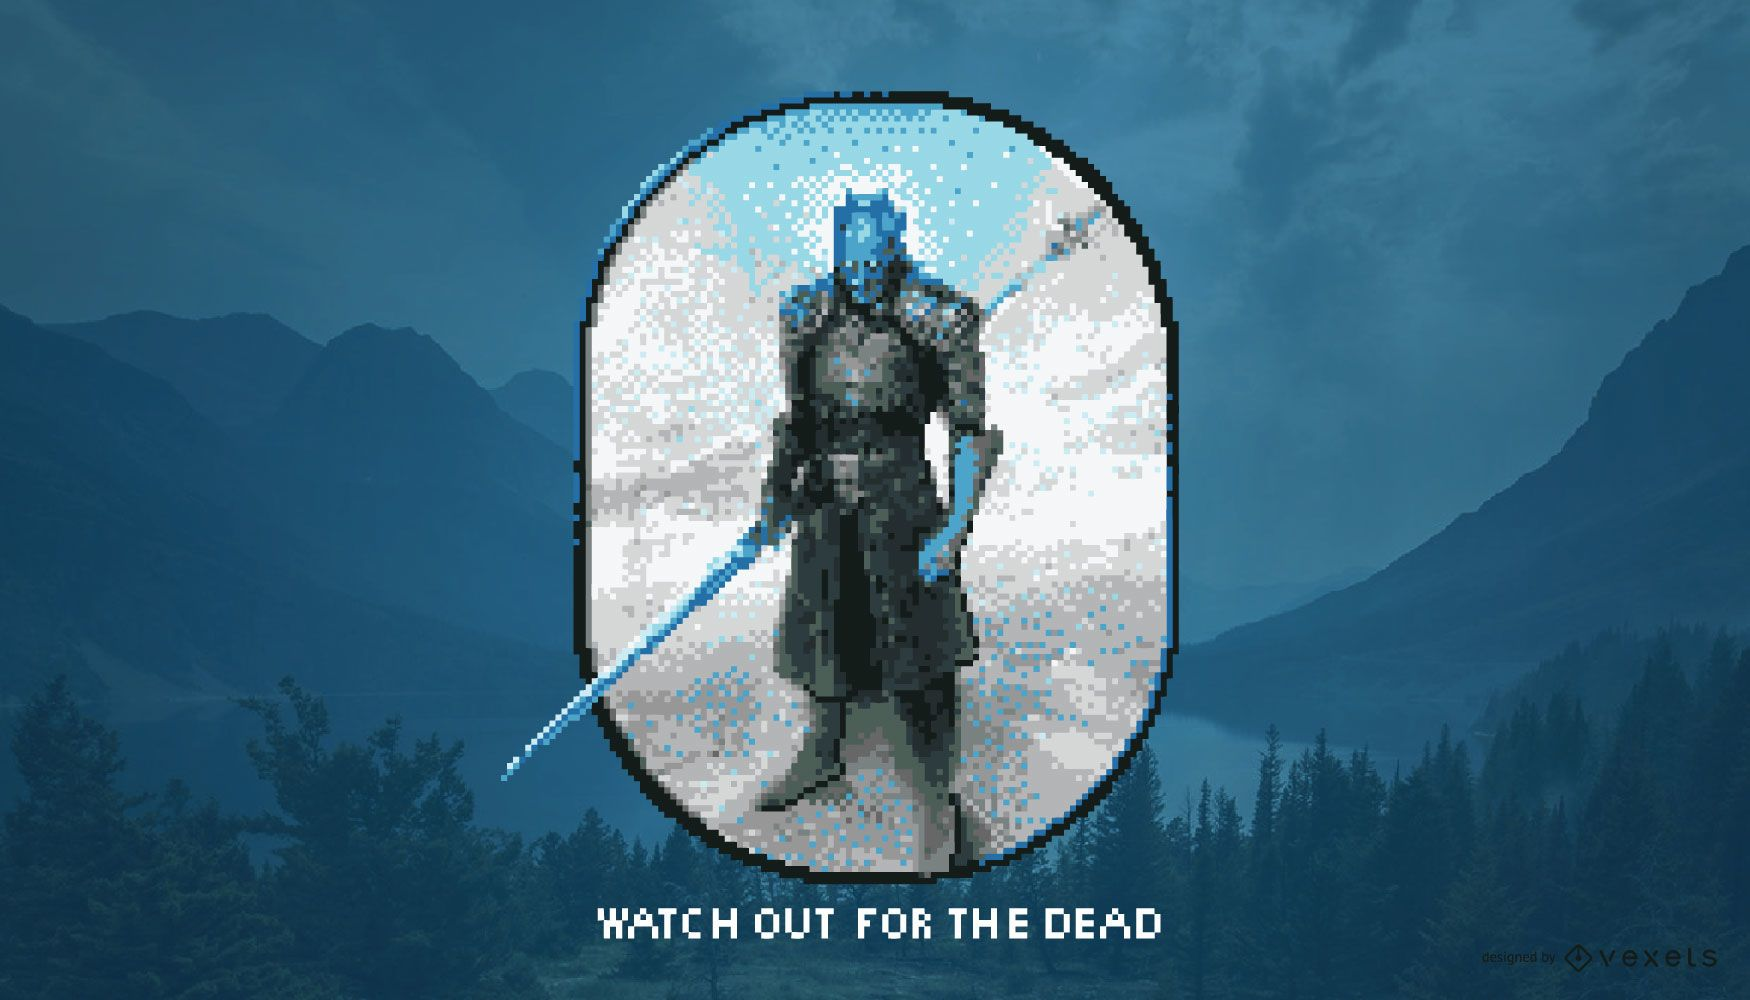 Watch Out For The Dead Illustration